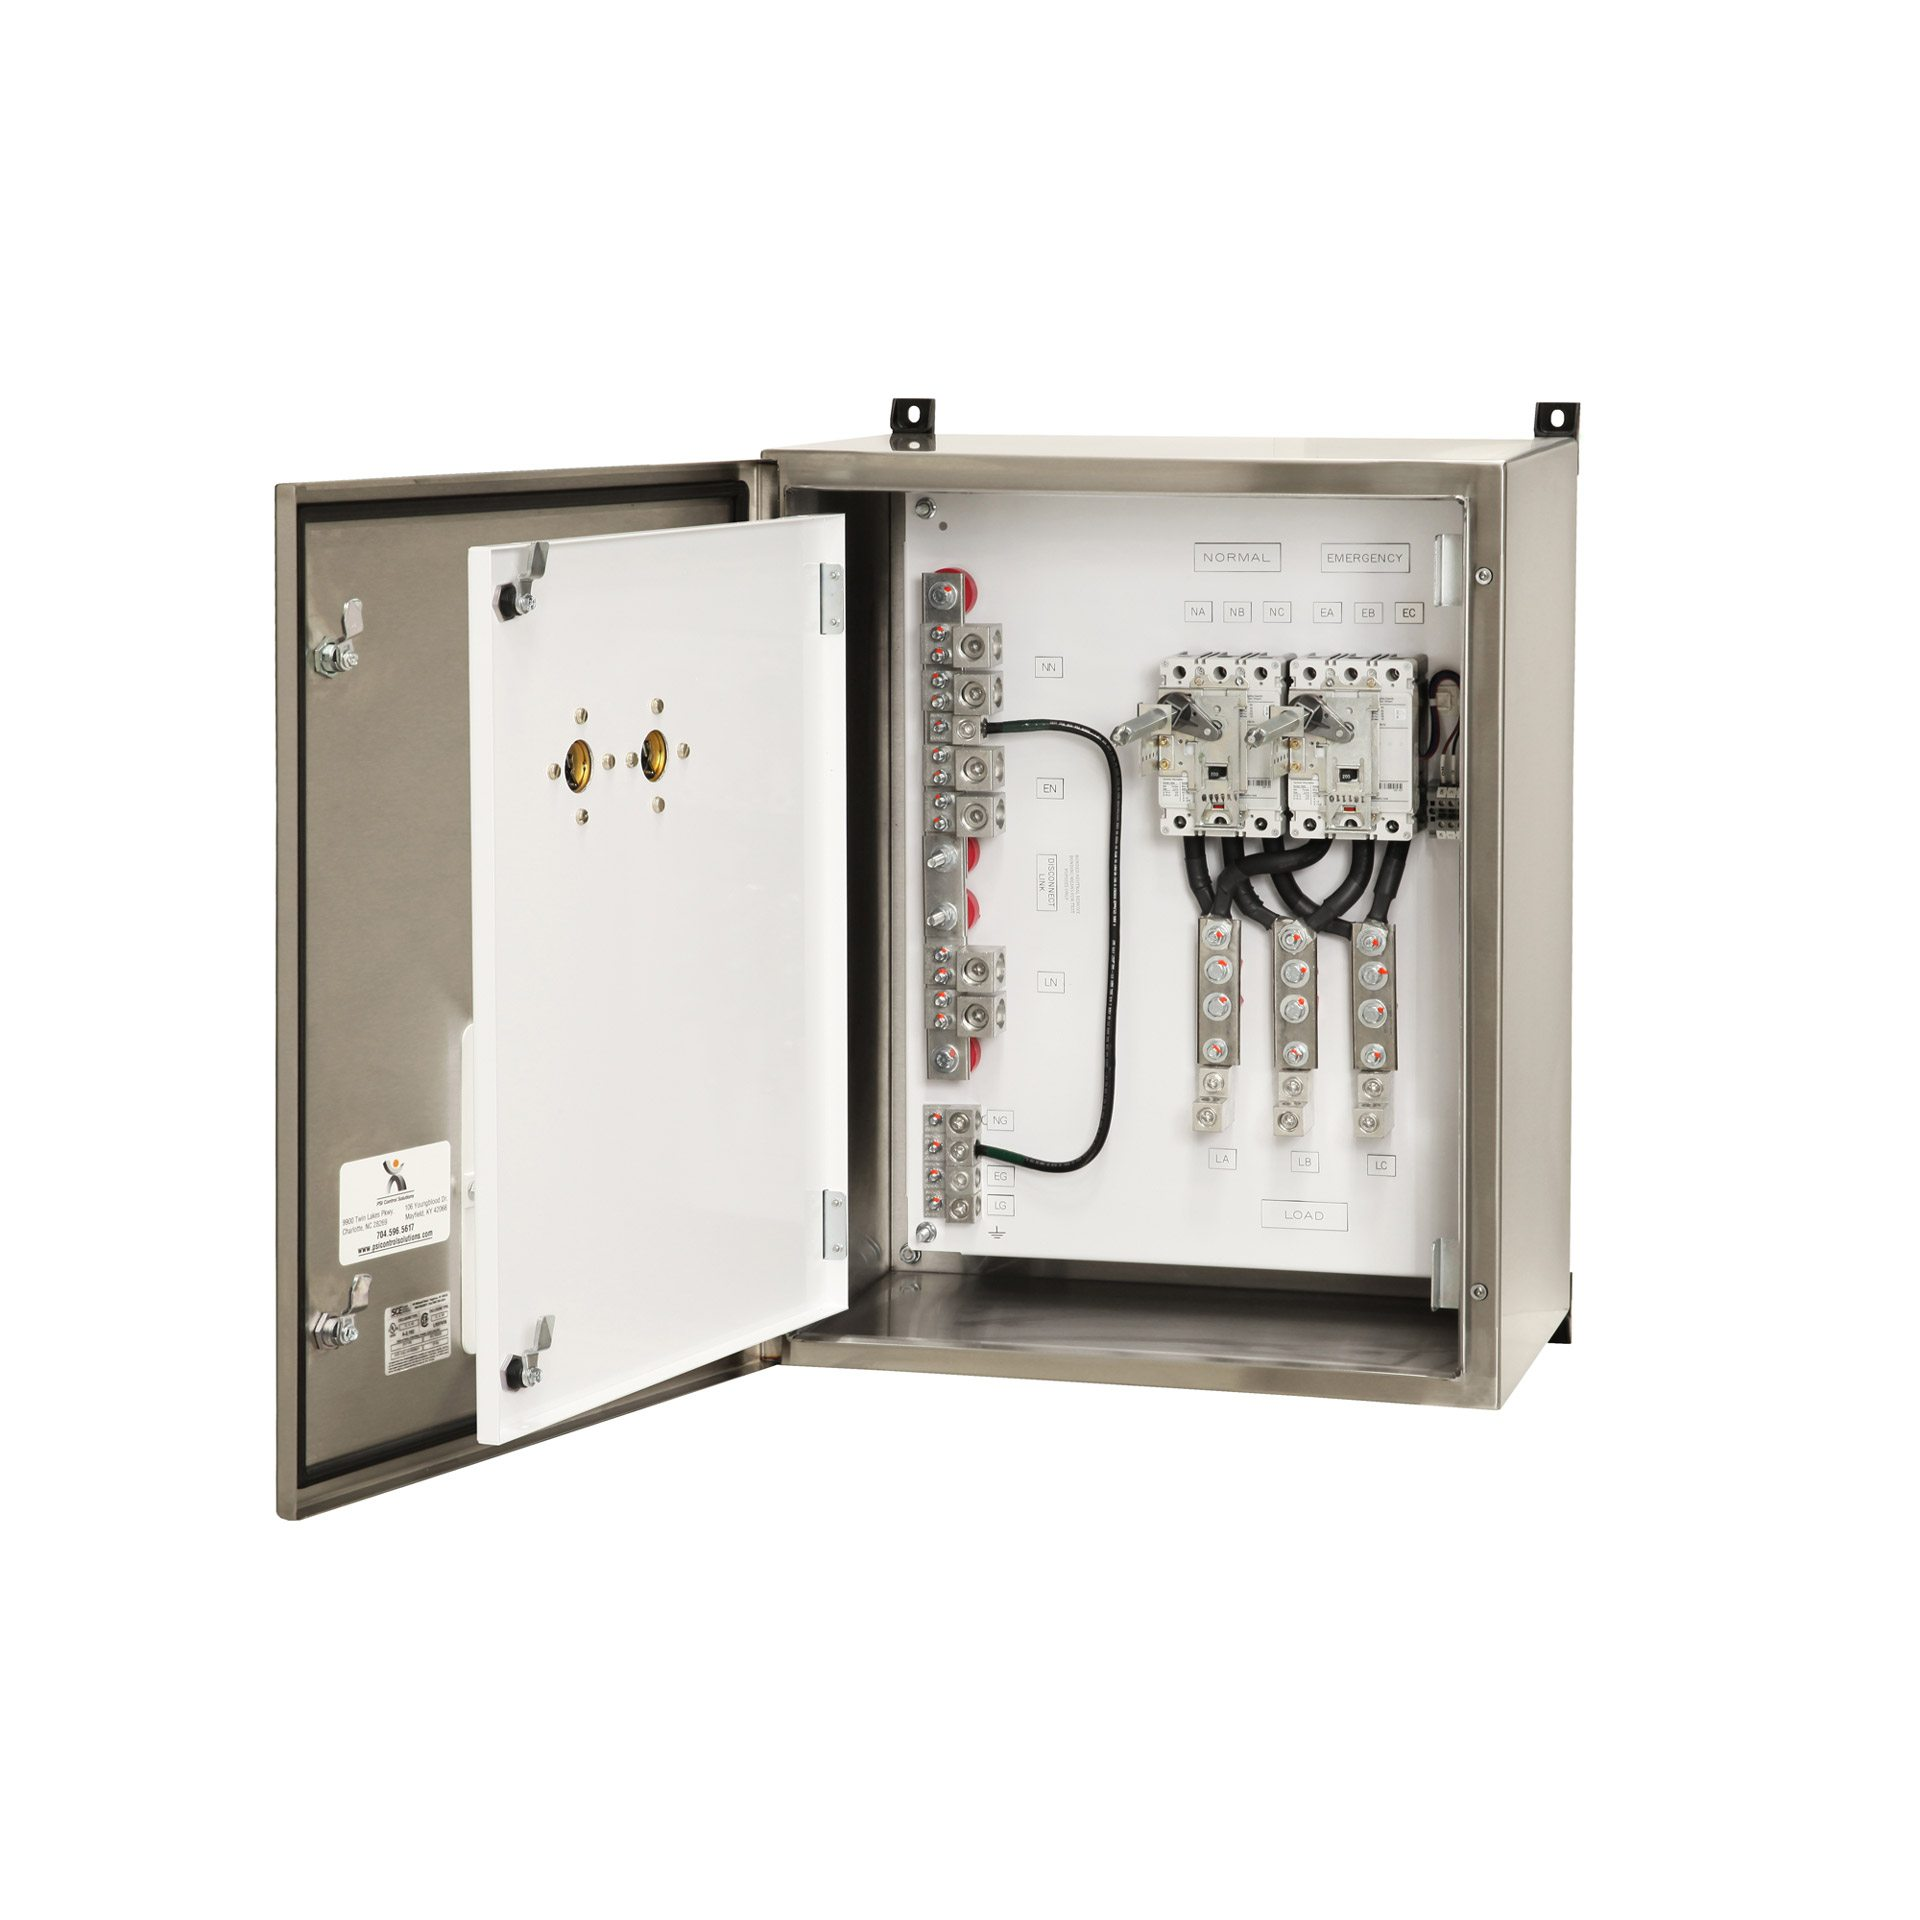 Manual Transfer Switch Breaker Breakers Psi Control Solutions Add Tandem To Expand The Available Circuits In Your Fuse Box Price 315000 1299900